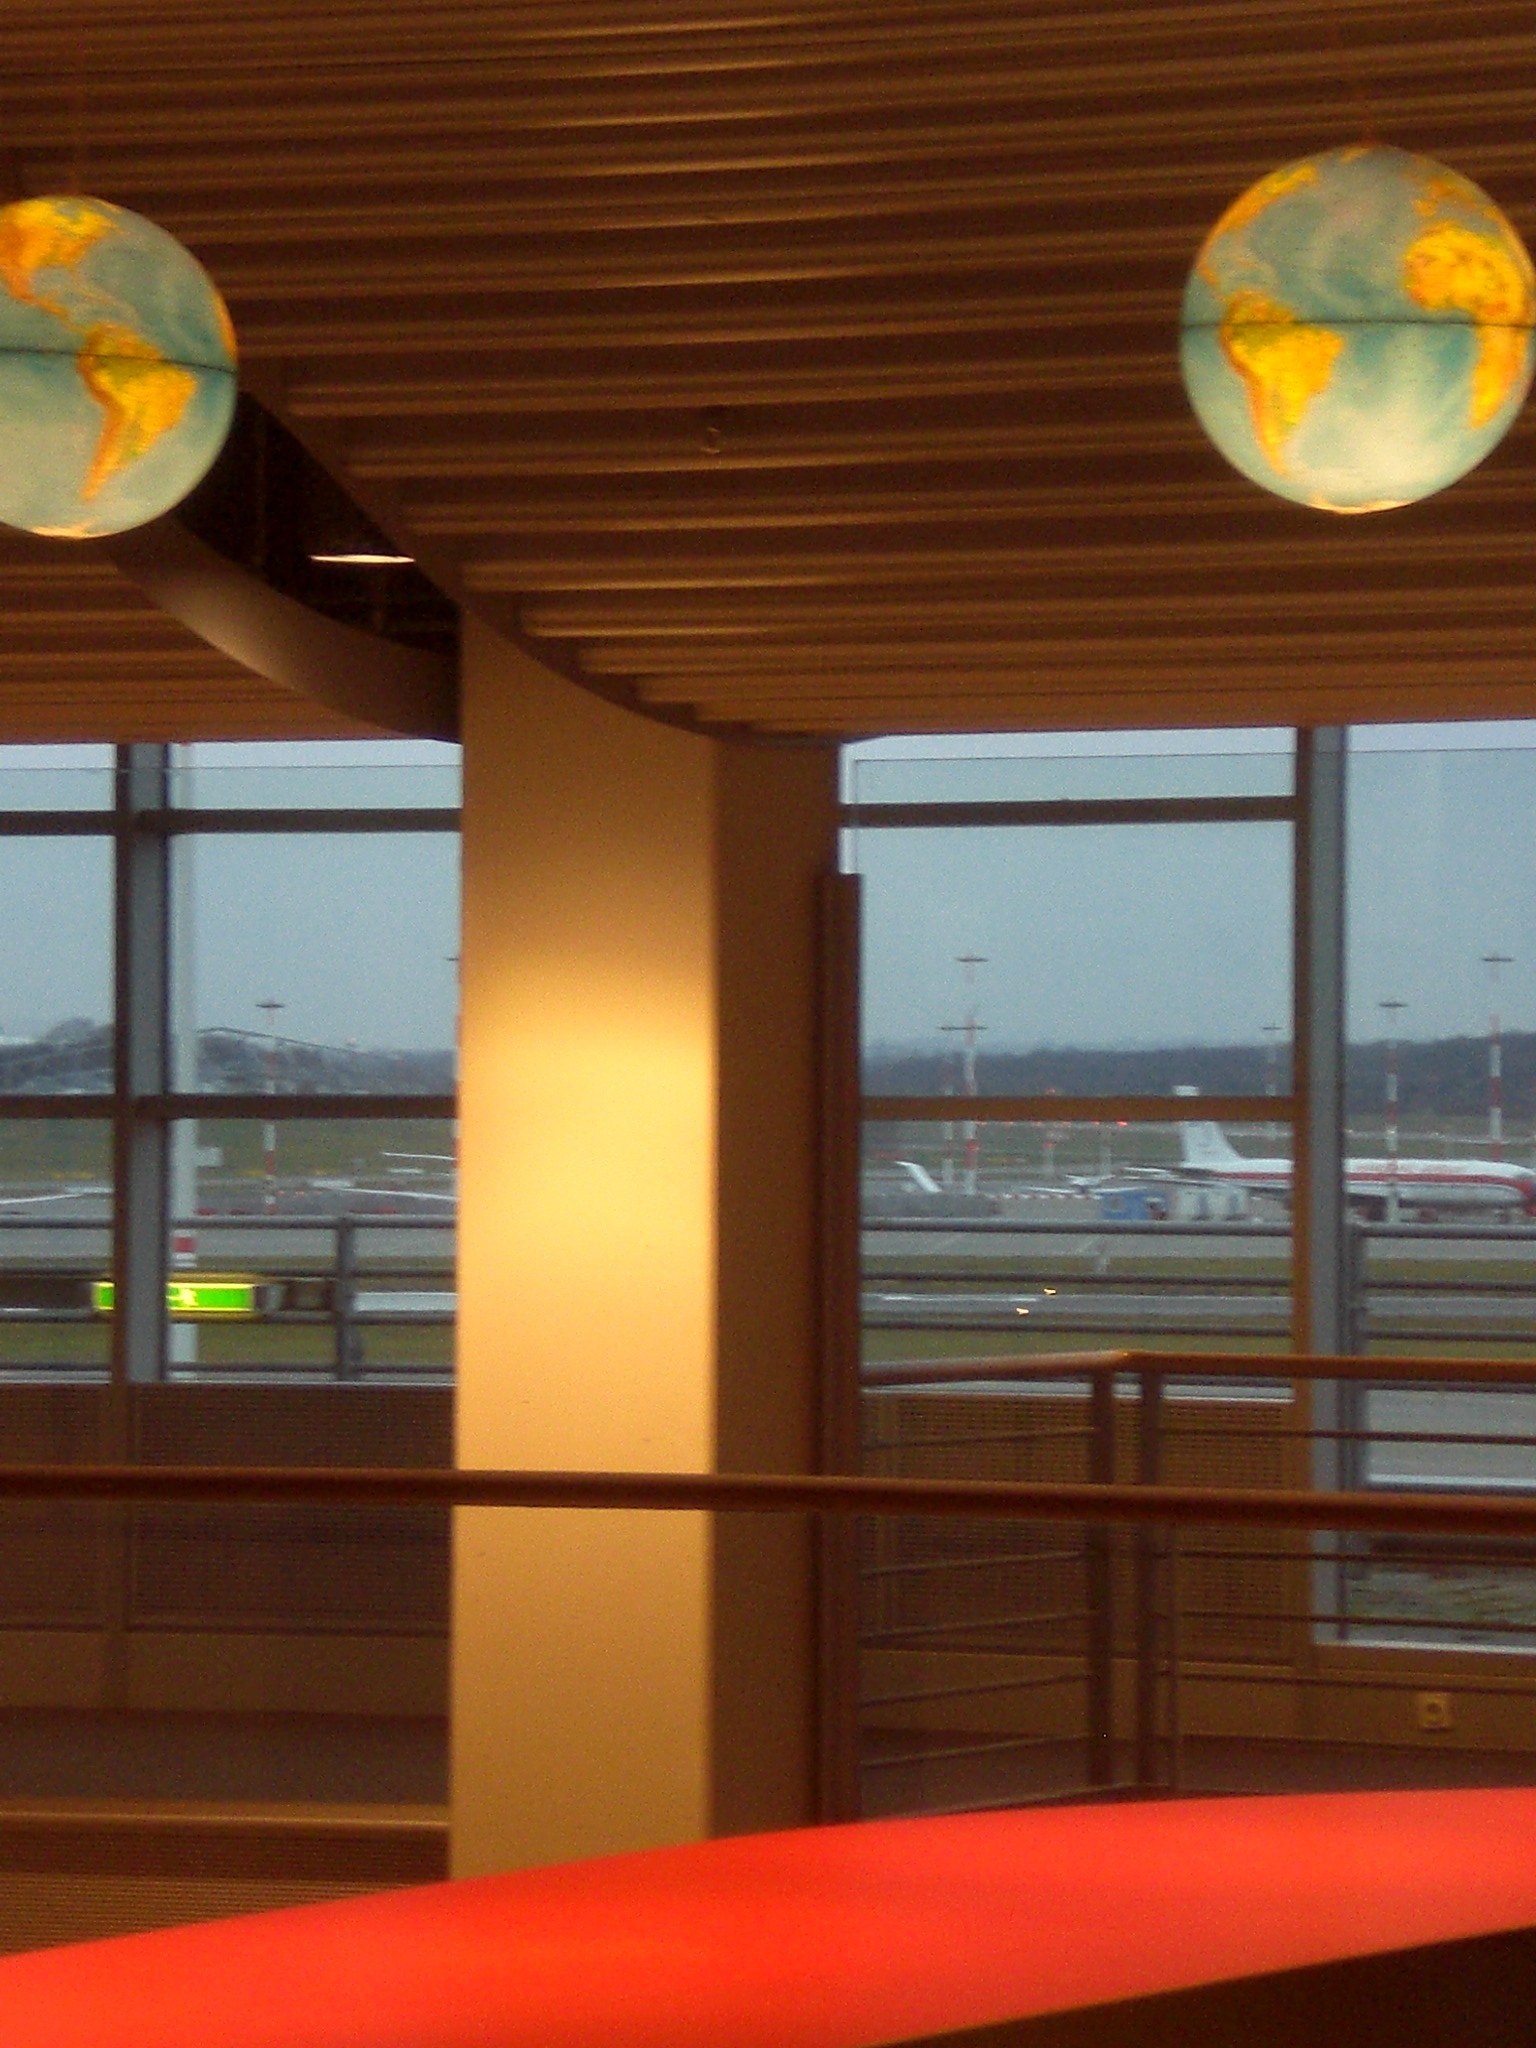 Earthshine...novelty lamps in the foreground as every plane except mine prepares for departure